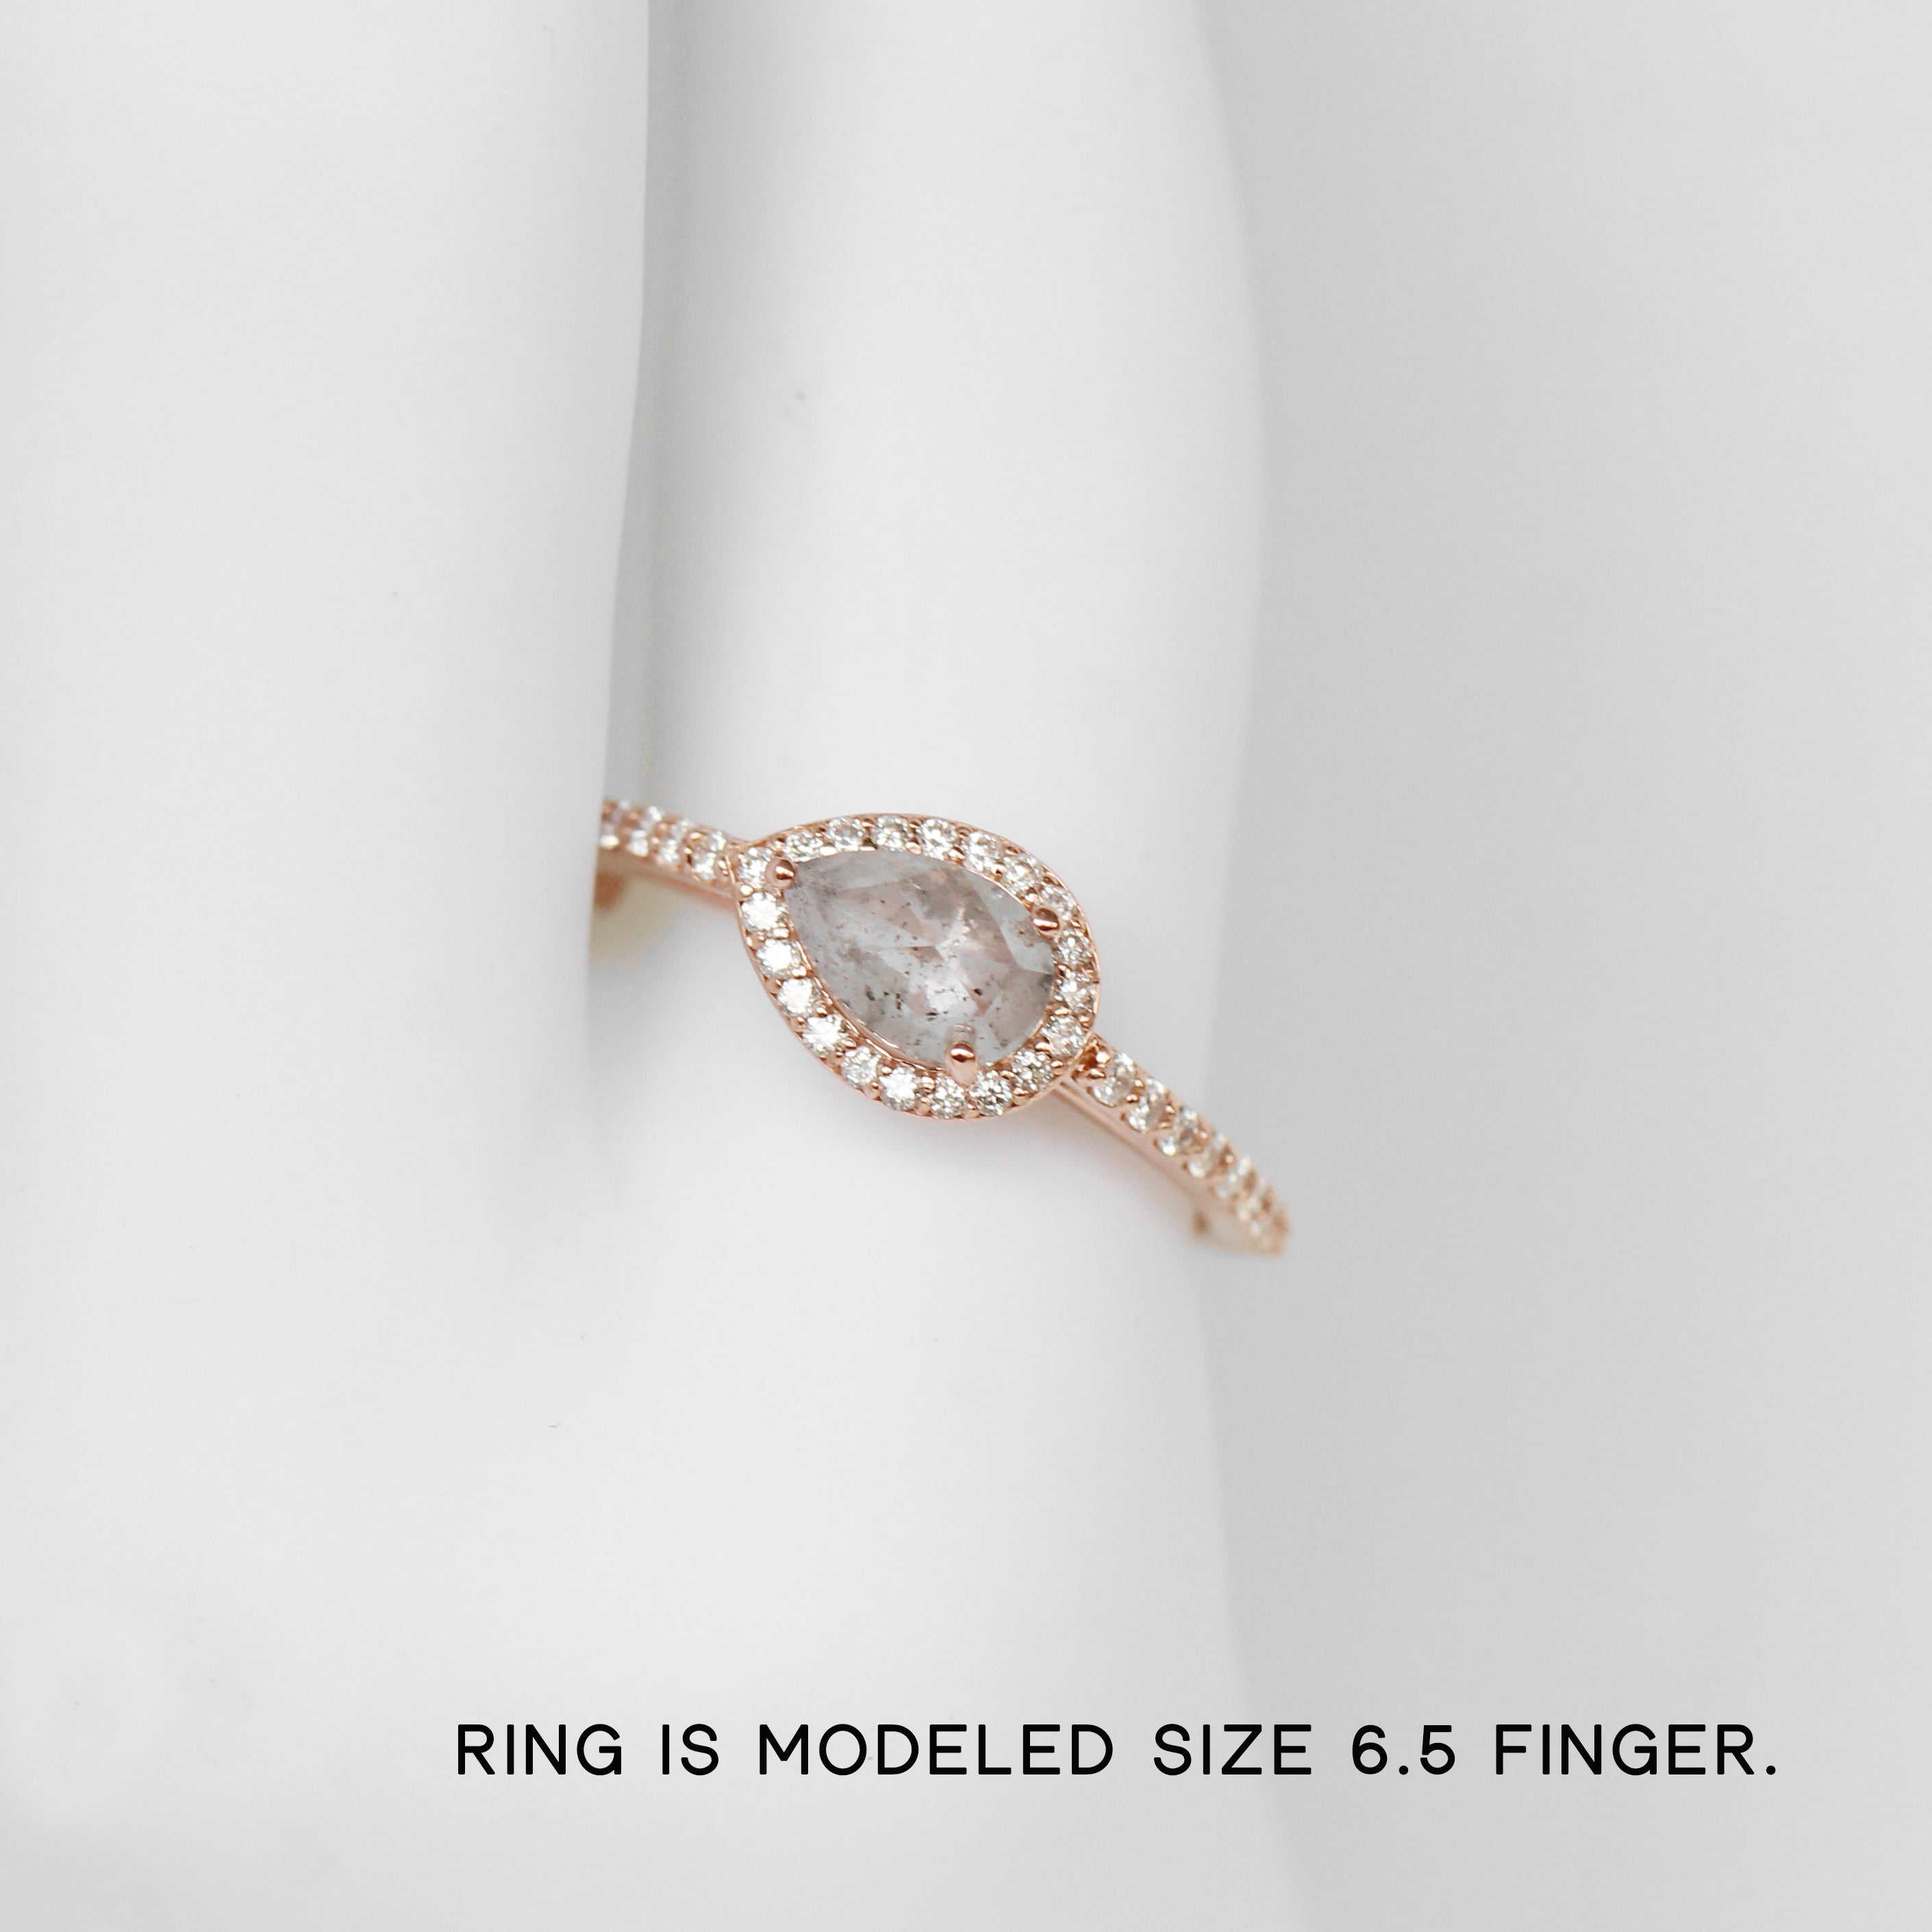 Chloe Ring with a Pear Sapphire in 10k Rose Gold - Ready to Size and Ship